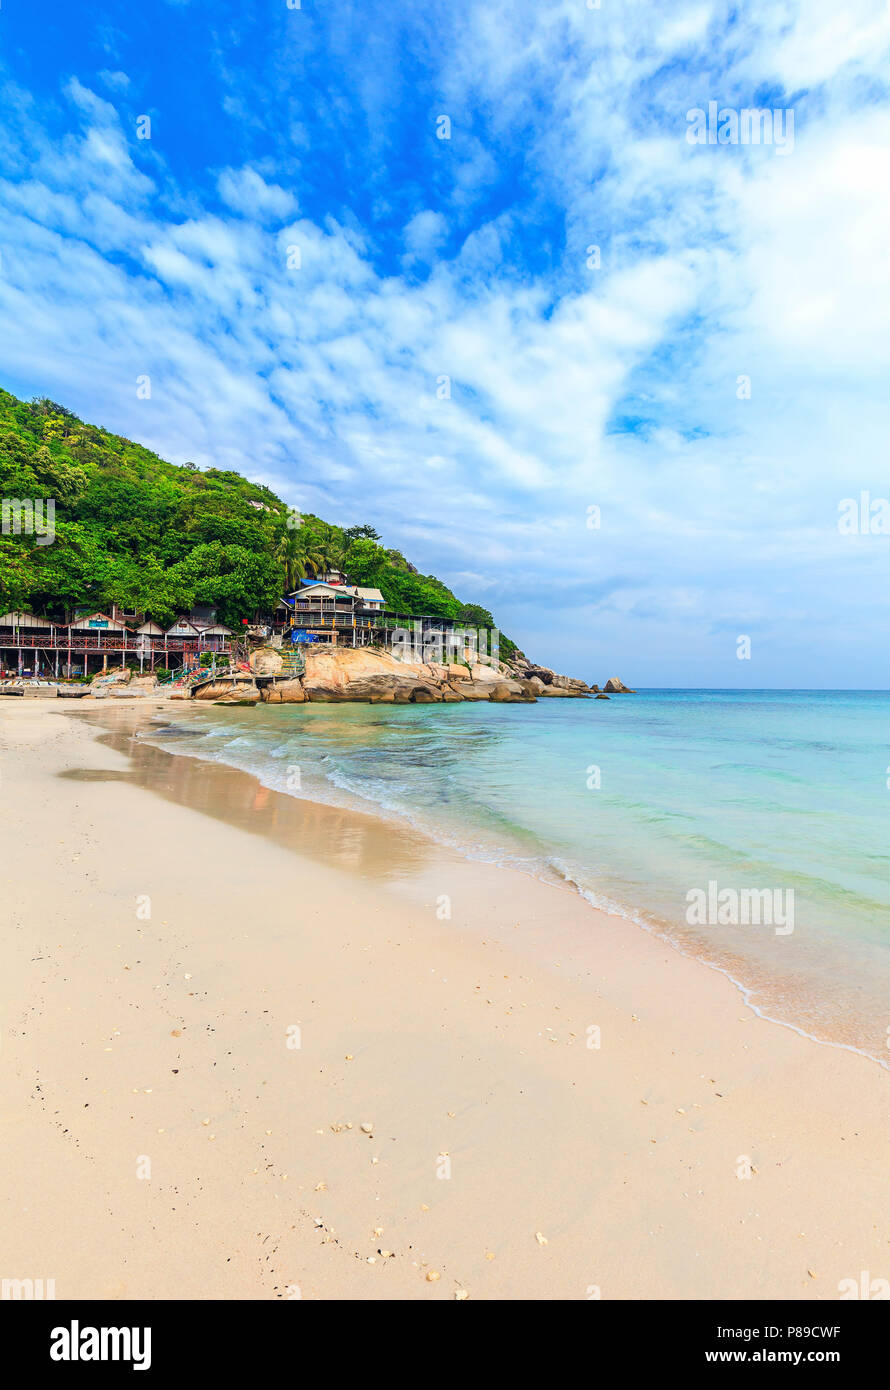 Haad Rin beach. Venue of the famous Full Moon Party. Koh Phangan. Thailand. - Stock Image